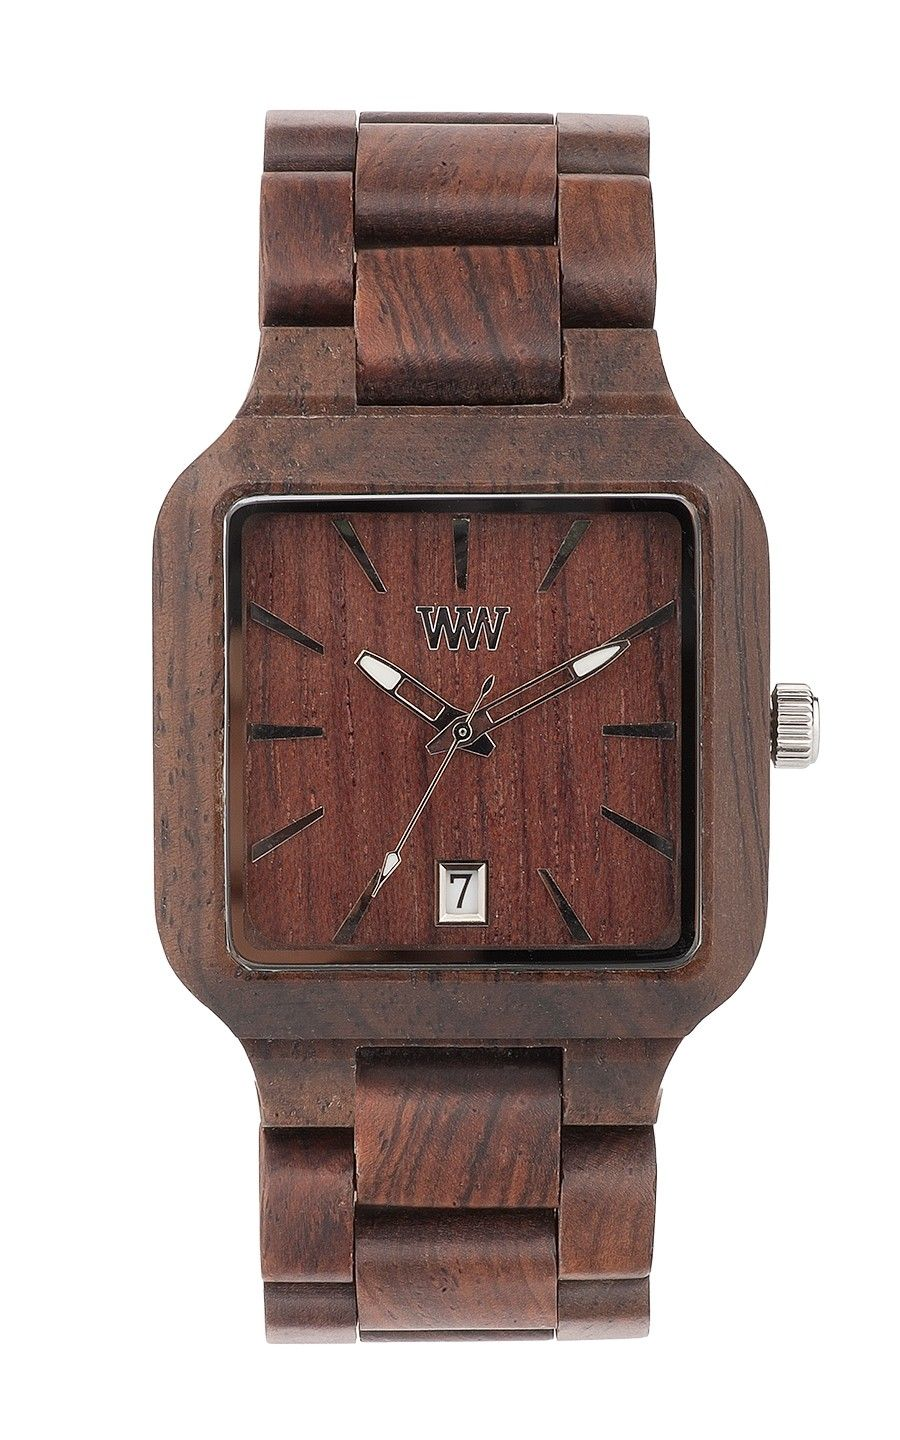 Wewood Watches Are Completely Natural And Every Tiem You